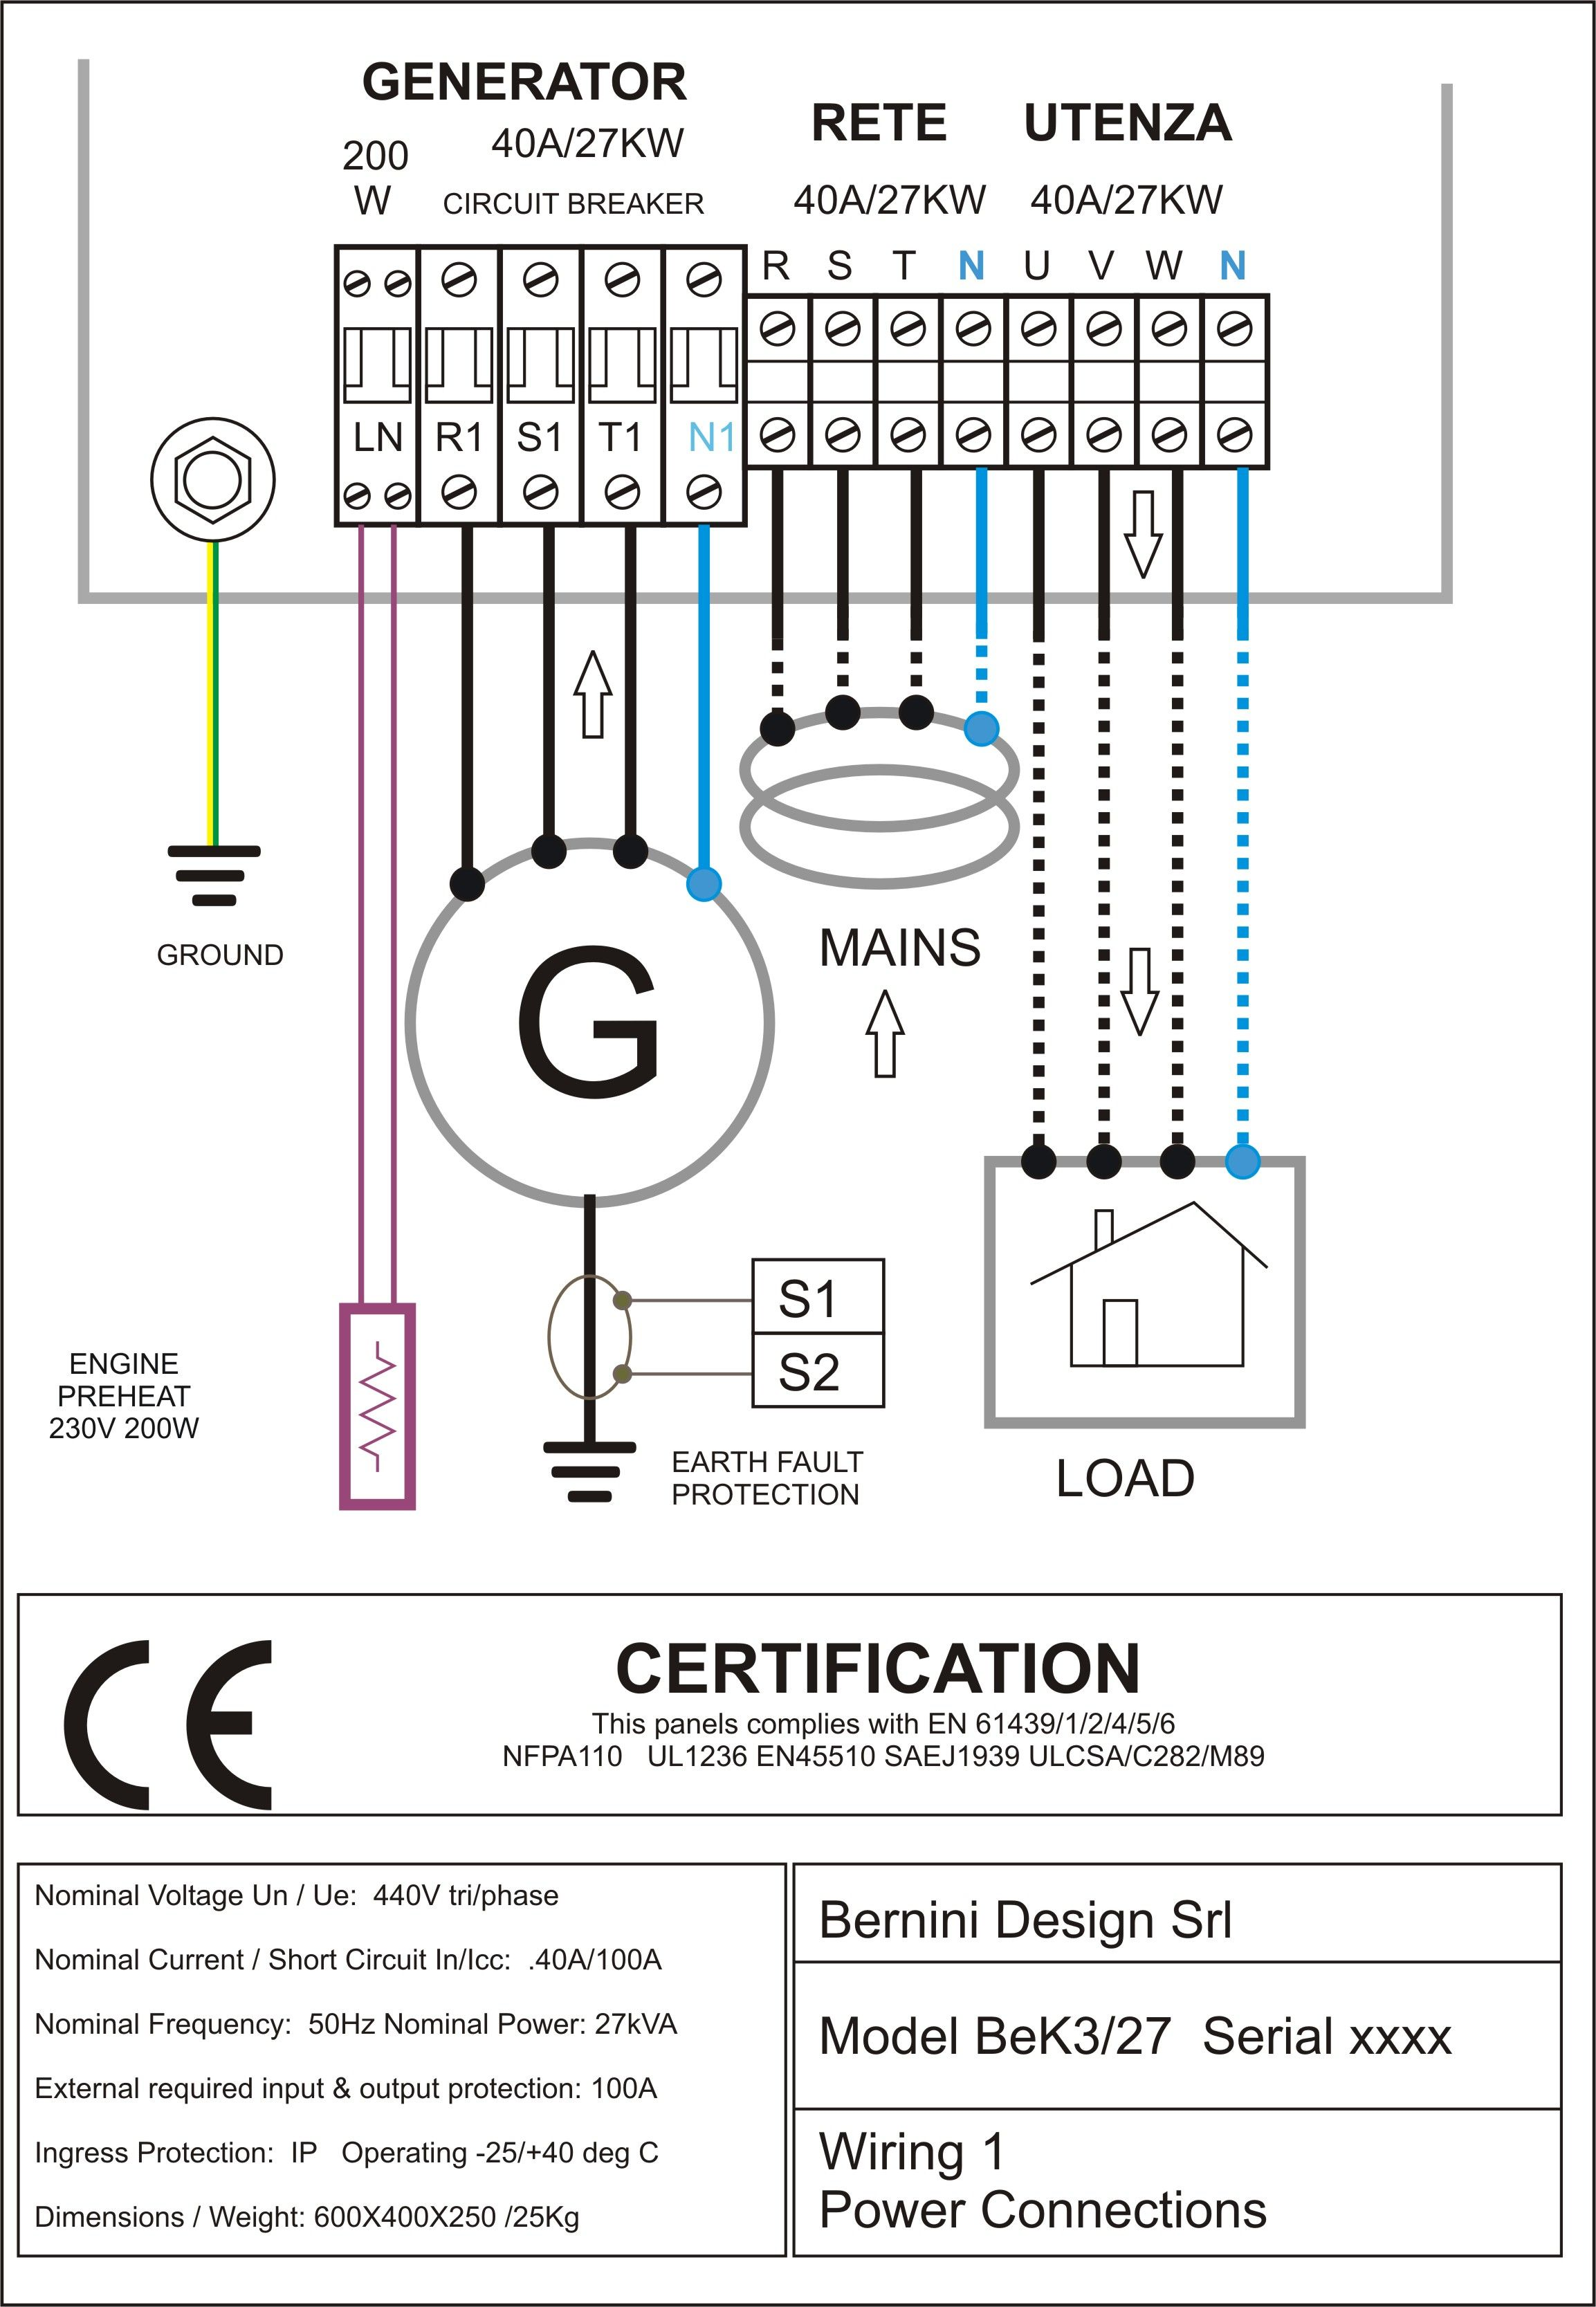 e789bca93f9142d48250ddc66668a81d diesel generator control panel wiring diagram ac connections gr generator wiring diagrams at creativeand.co